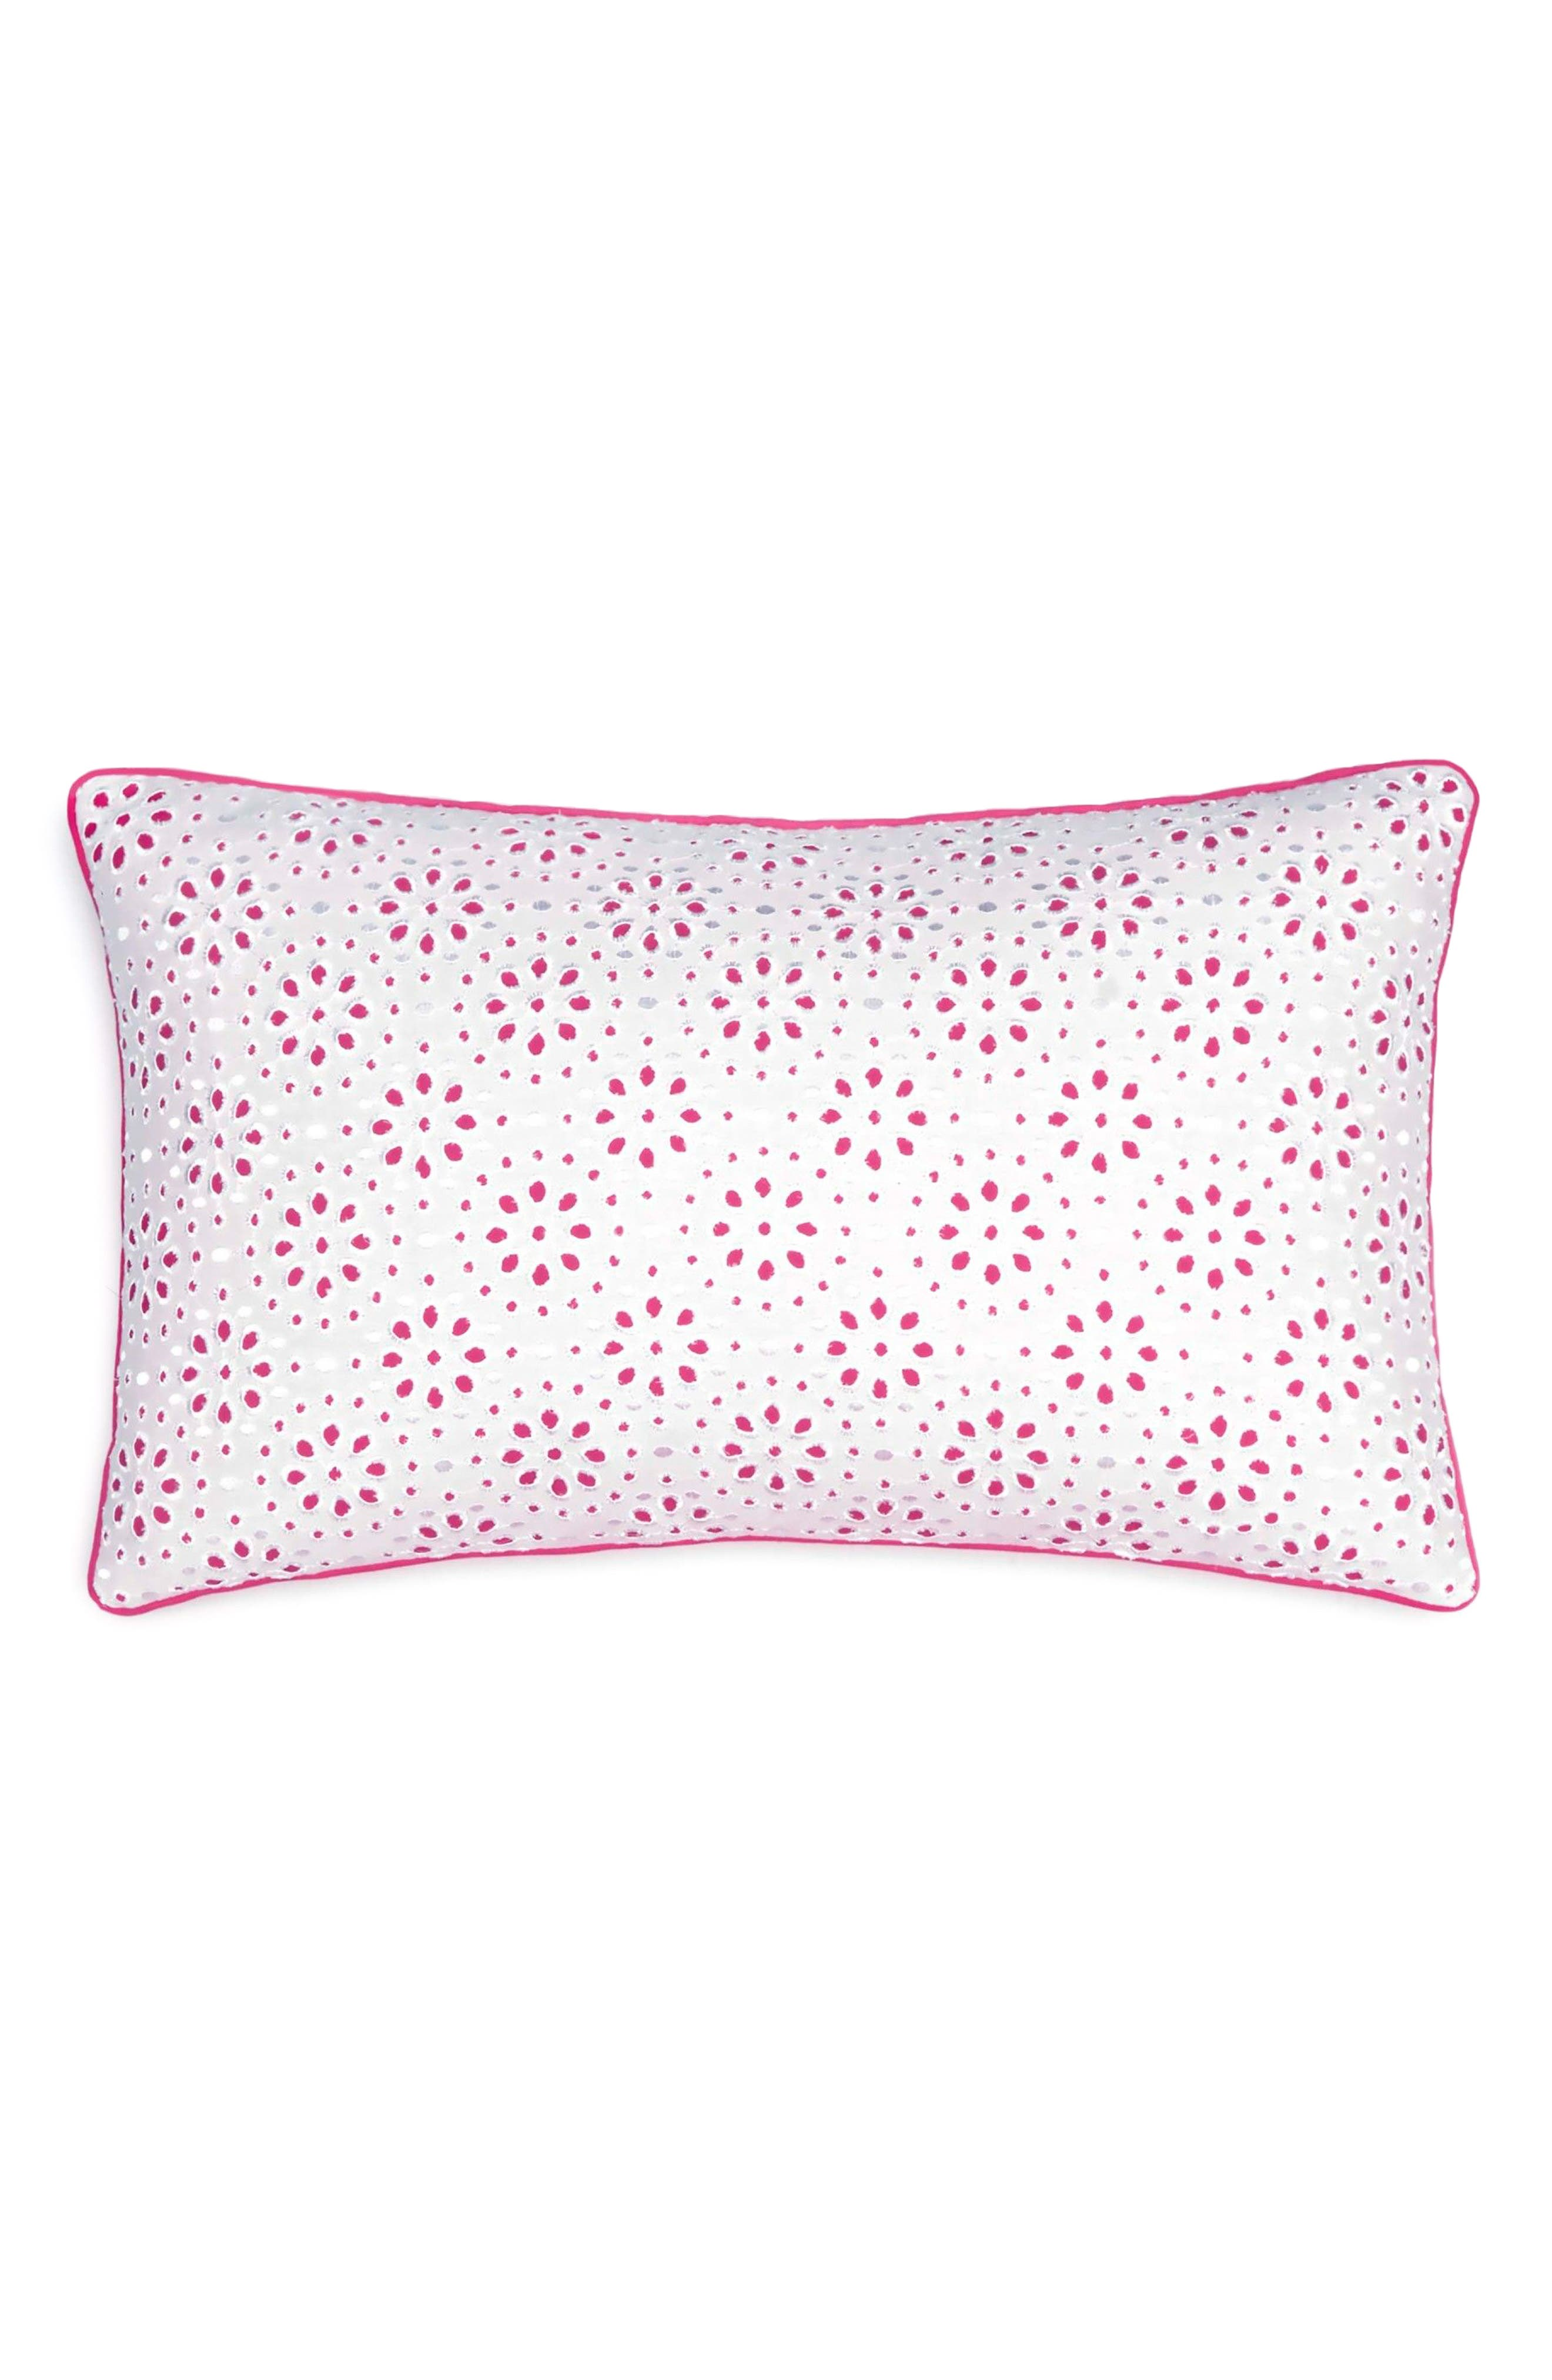 Alternate Image 1 Selected - Southern Tide Floral Eyelet Pillow